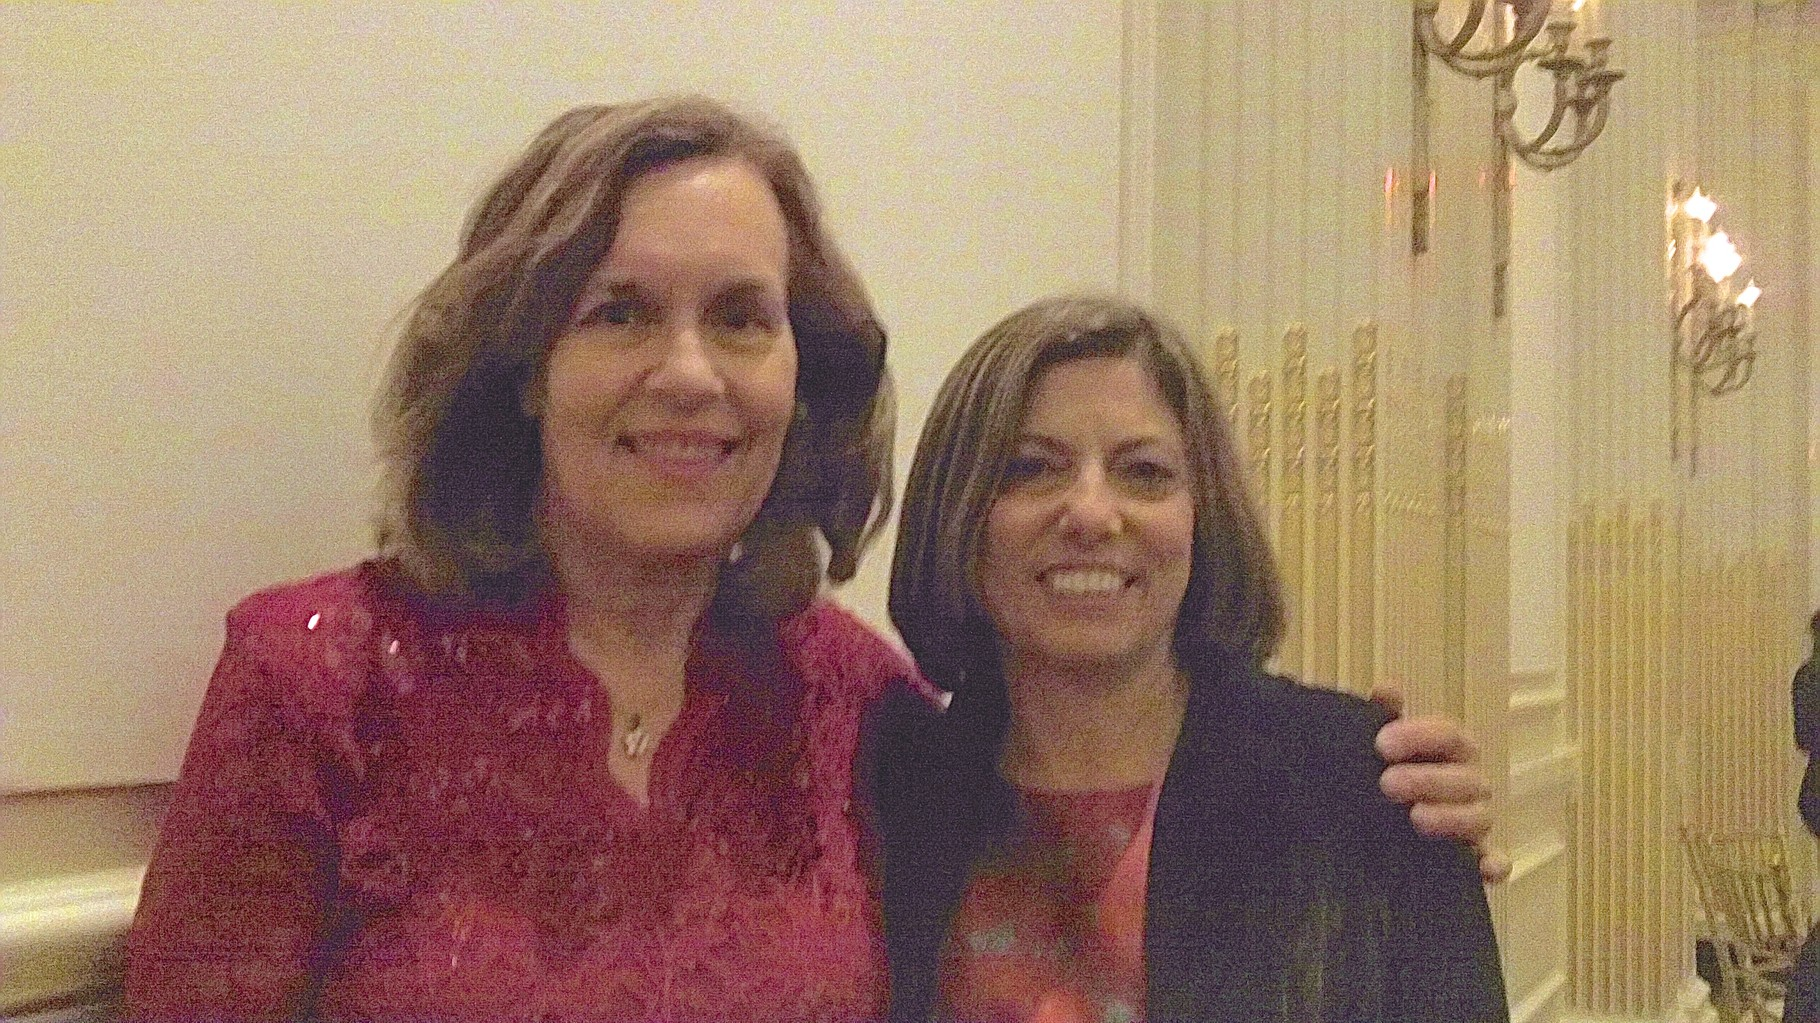 Dr. Lorraine Gudas & Dr. Lisa Staiano-Coico, President of CUNY, at the party for Dr. Gotto